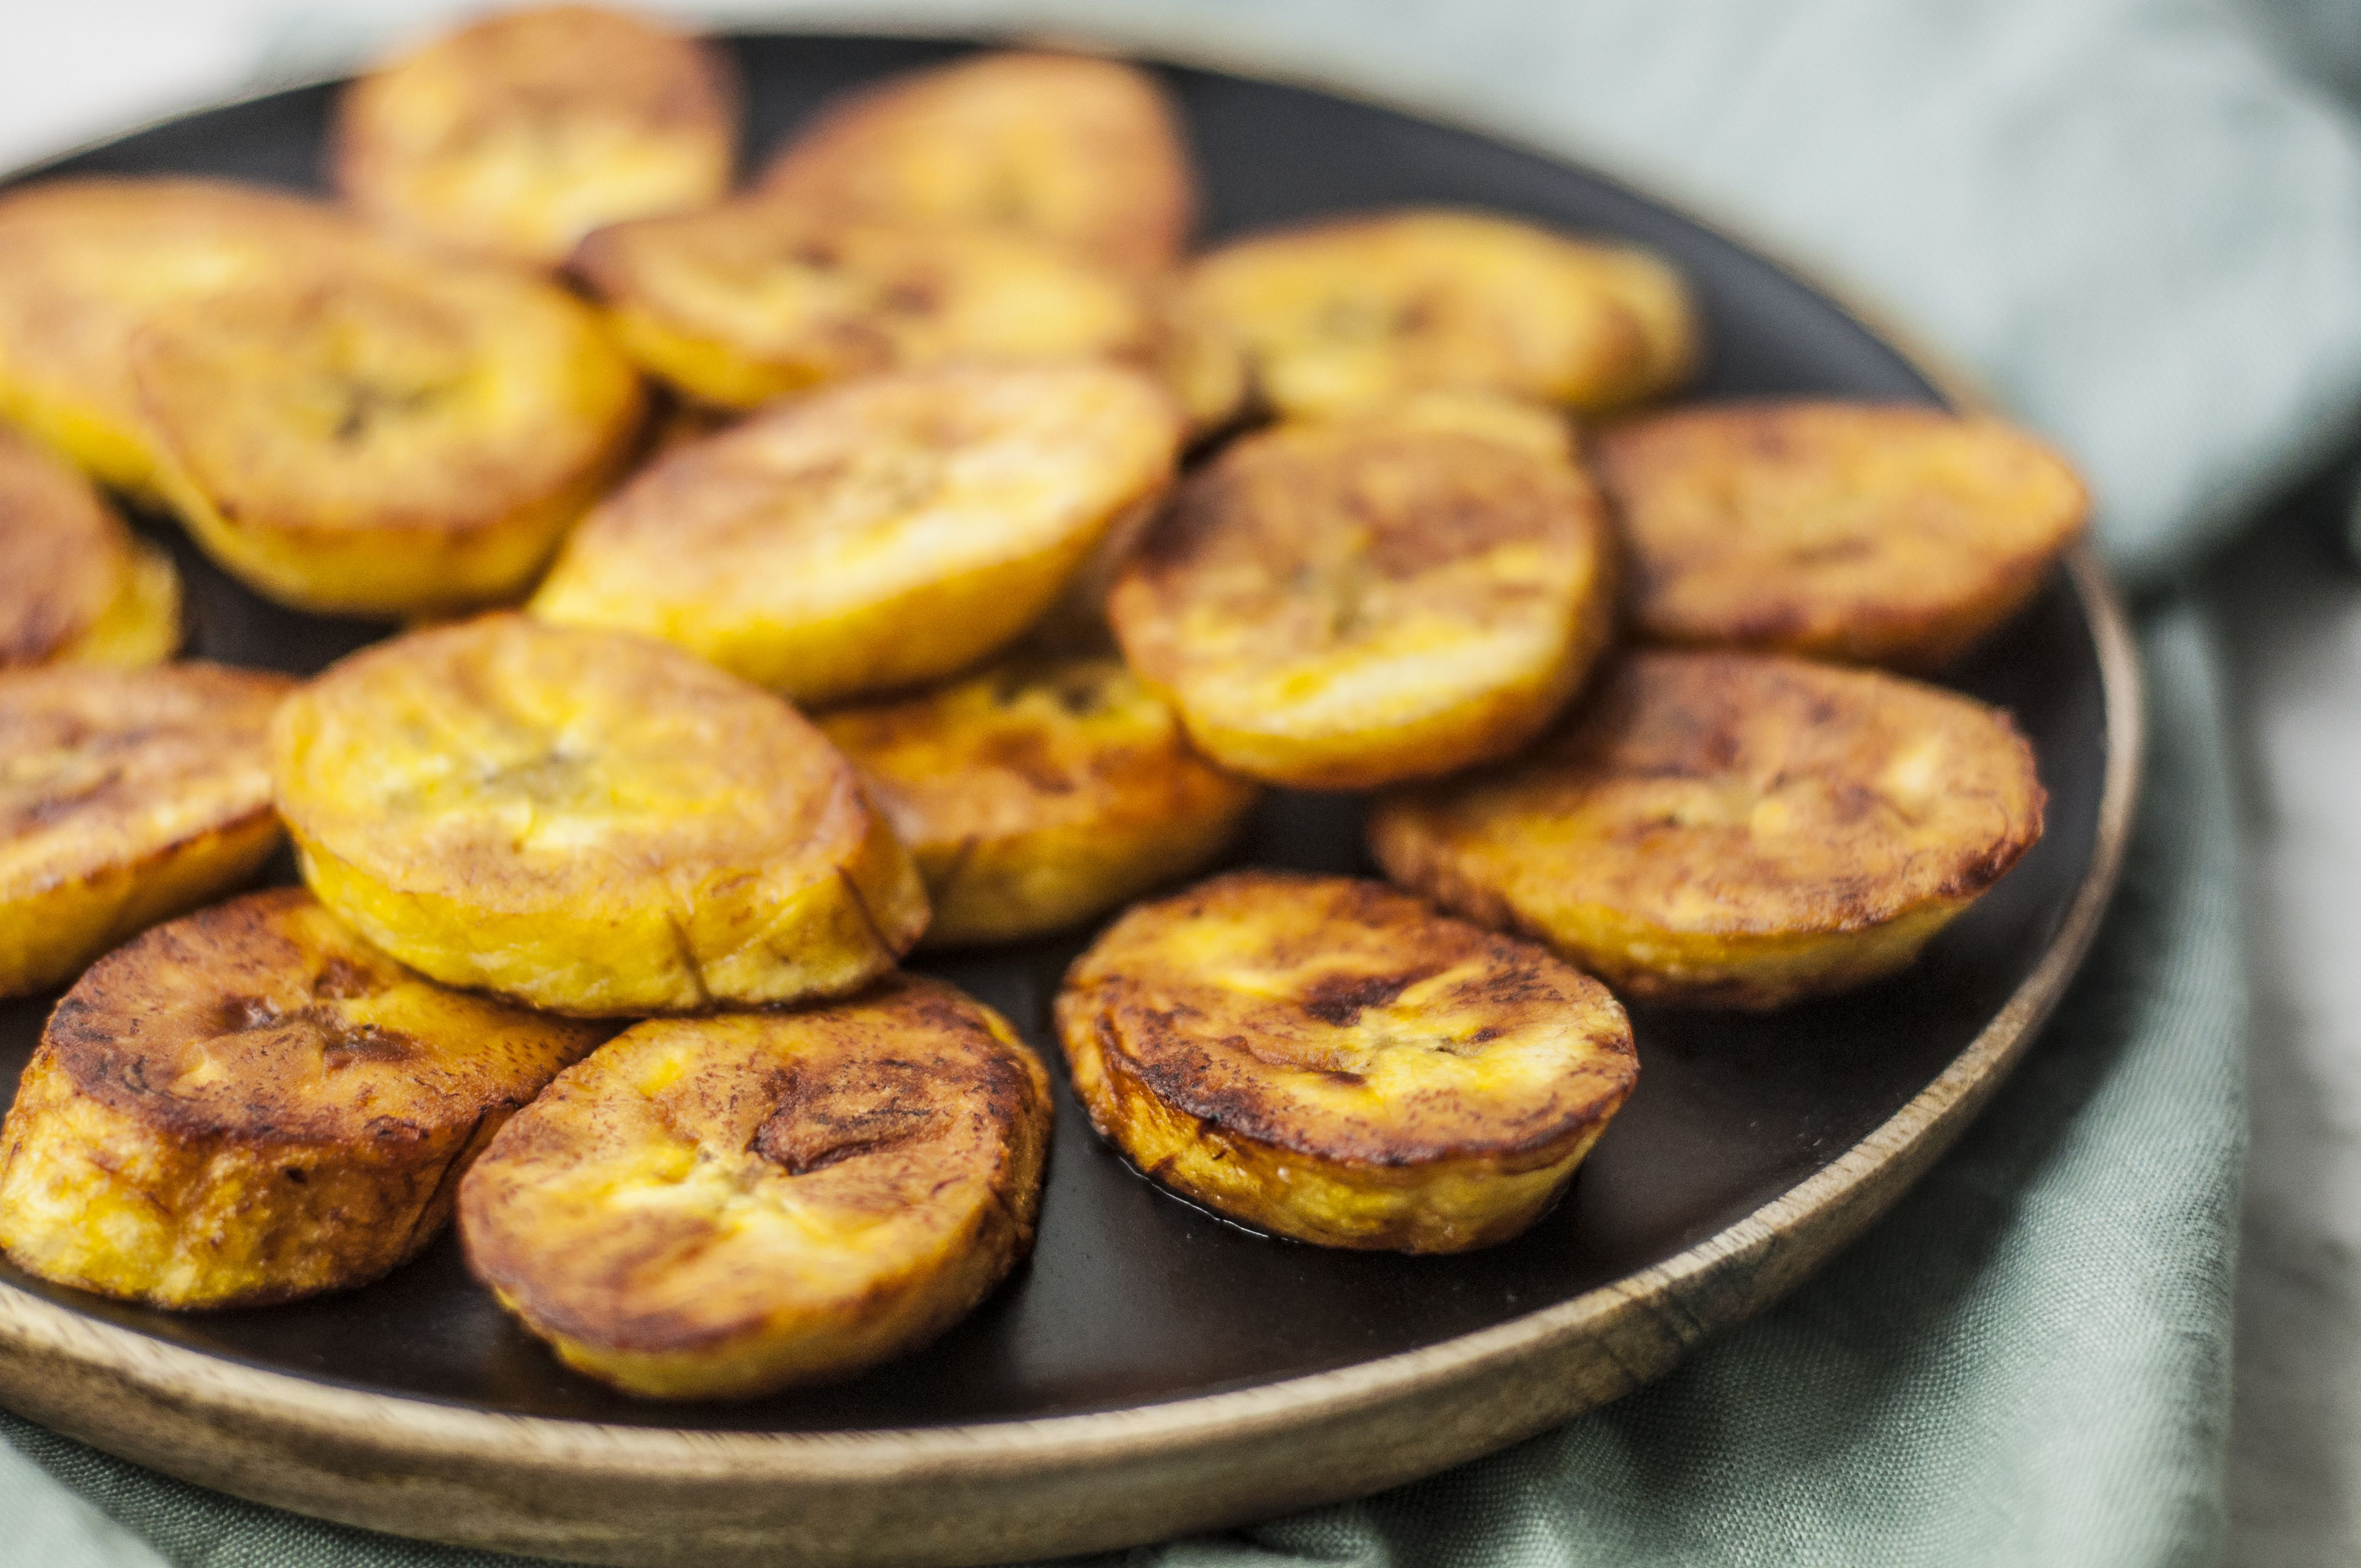 Close-up of fried ripe plantains on a plate